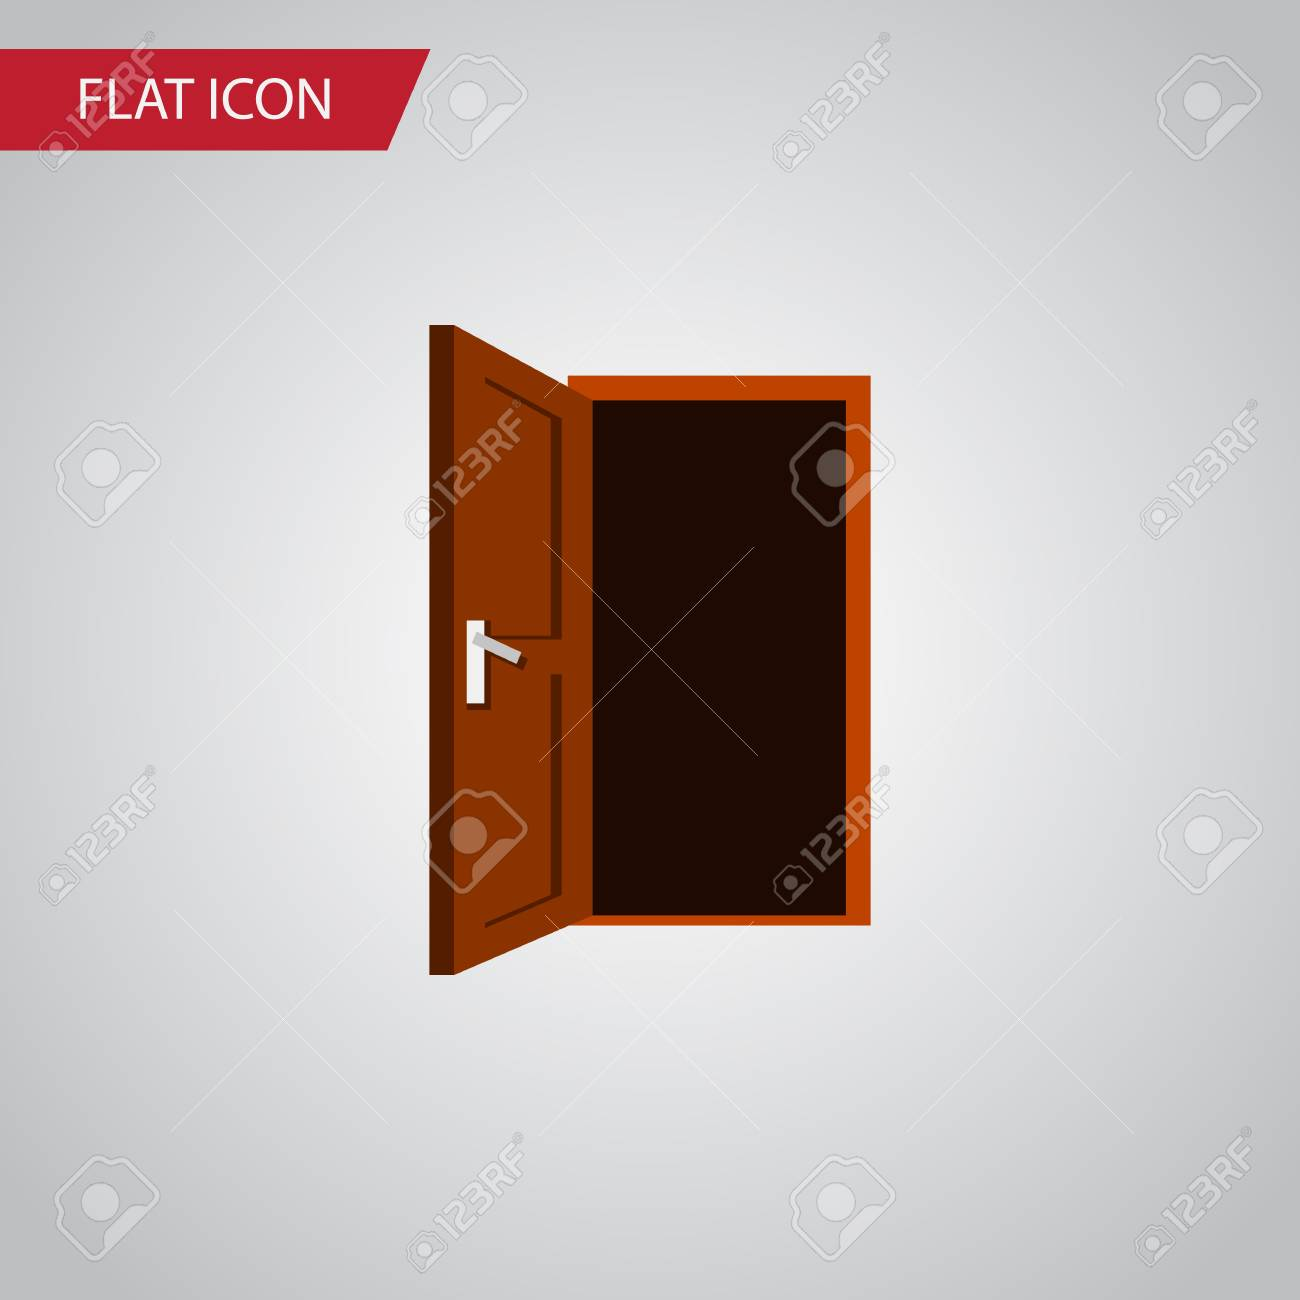 Isolated Frame Flat Icon Approach Vector Element Can Be Used